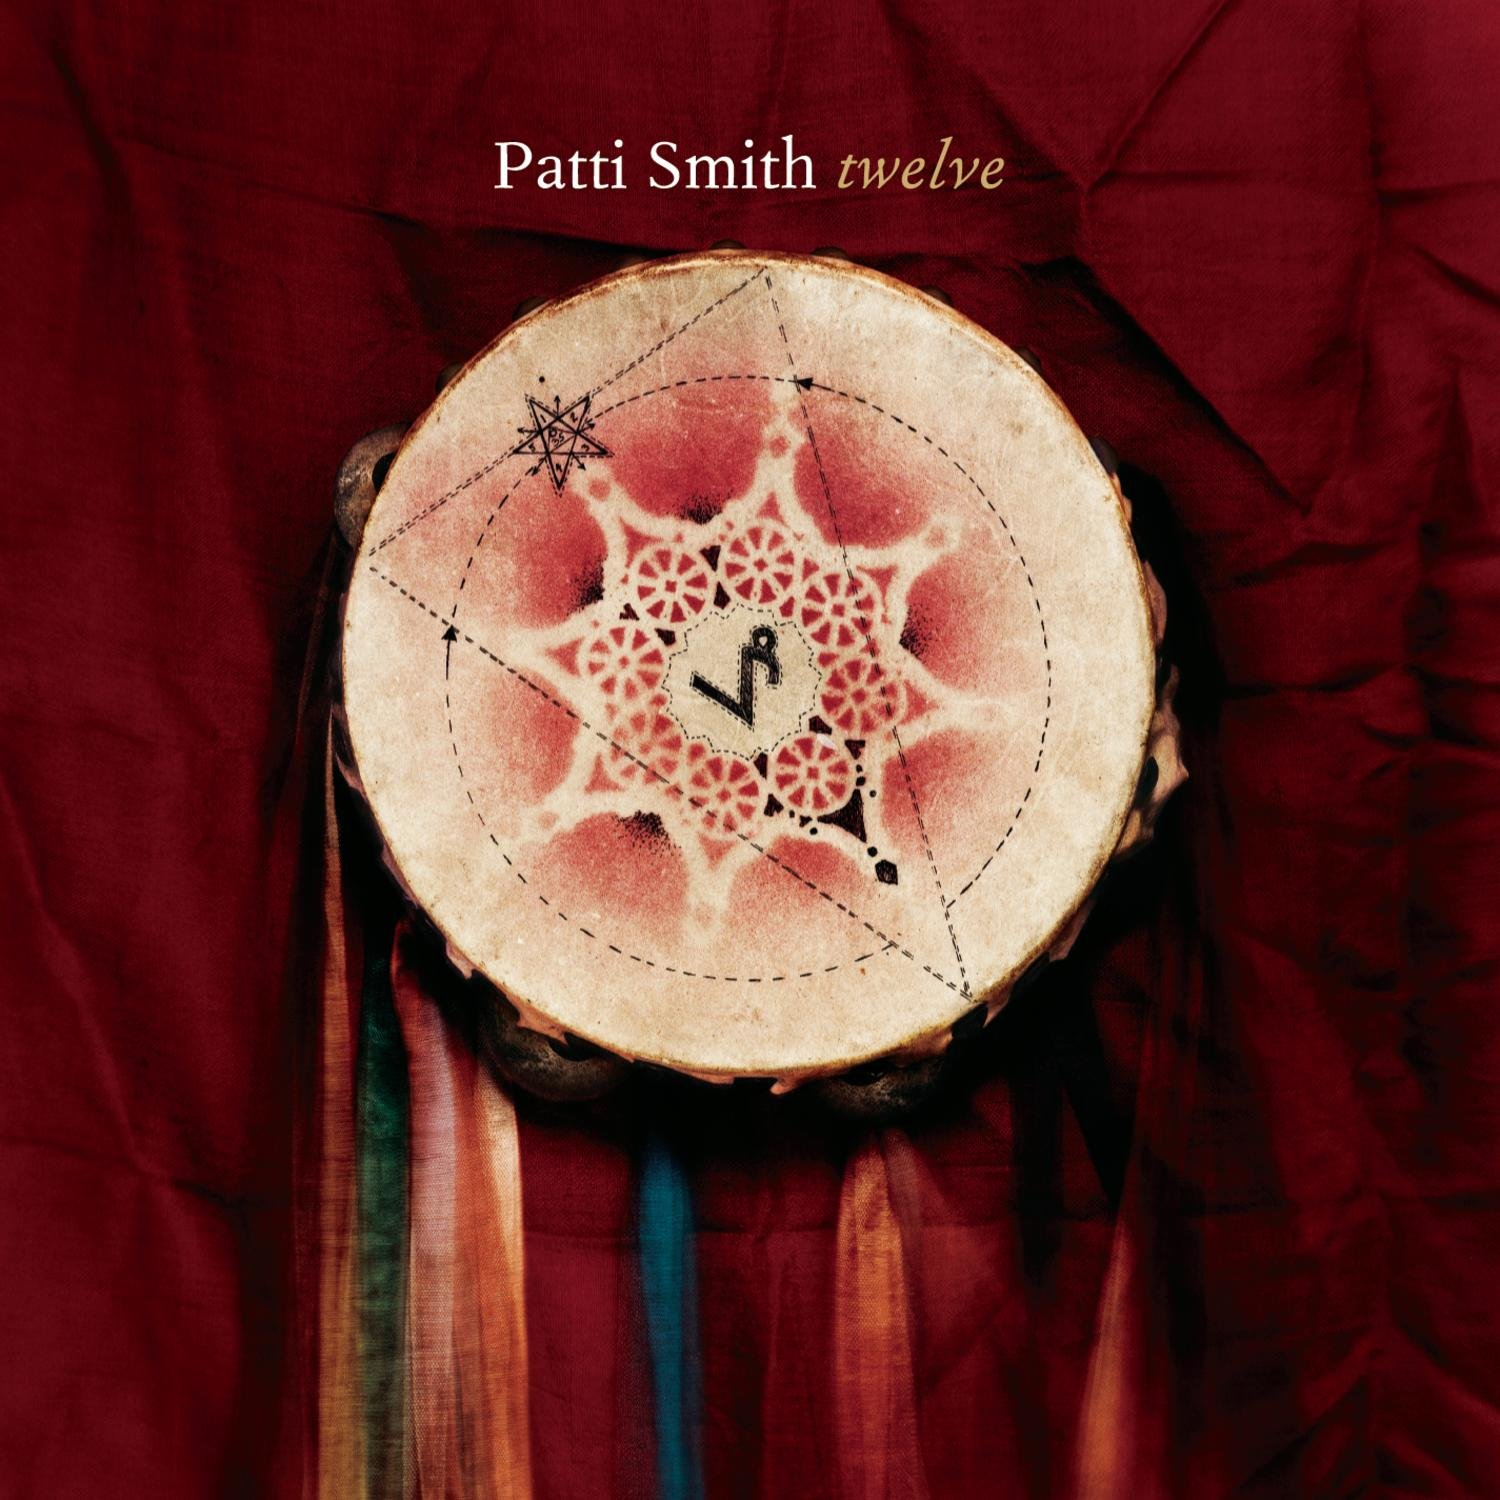 Cover Classics: Patti Smith's 'Twelve'